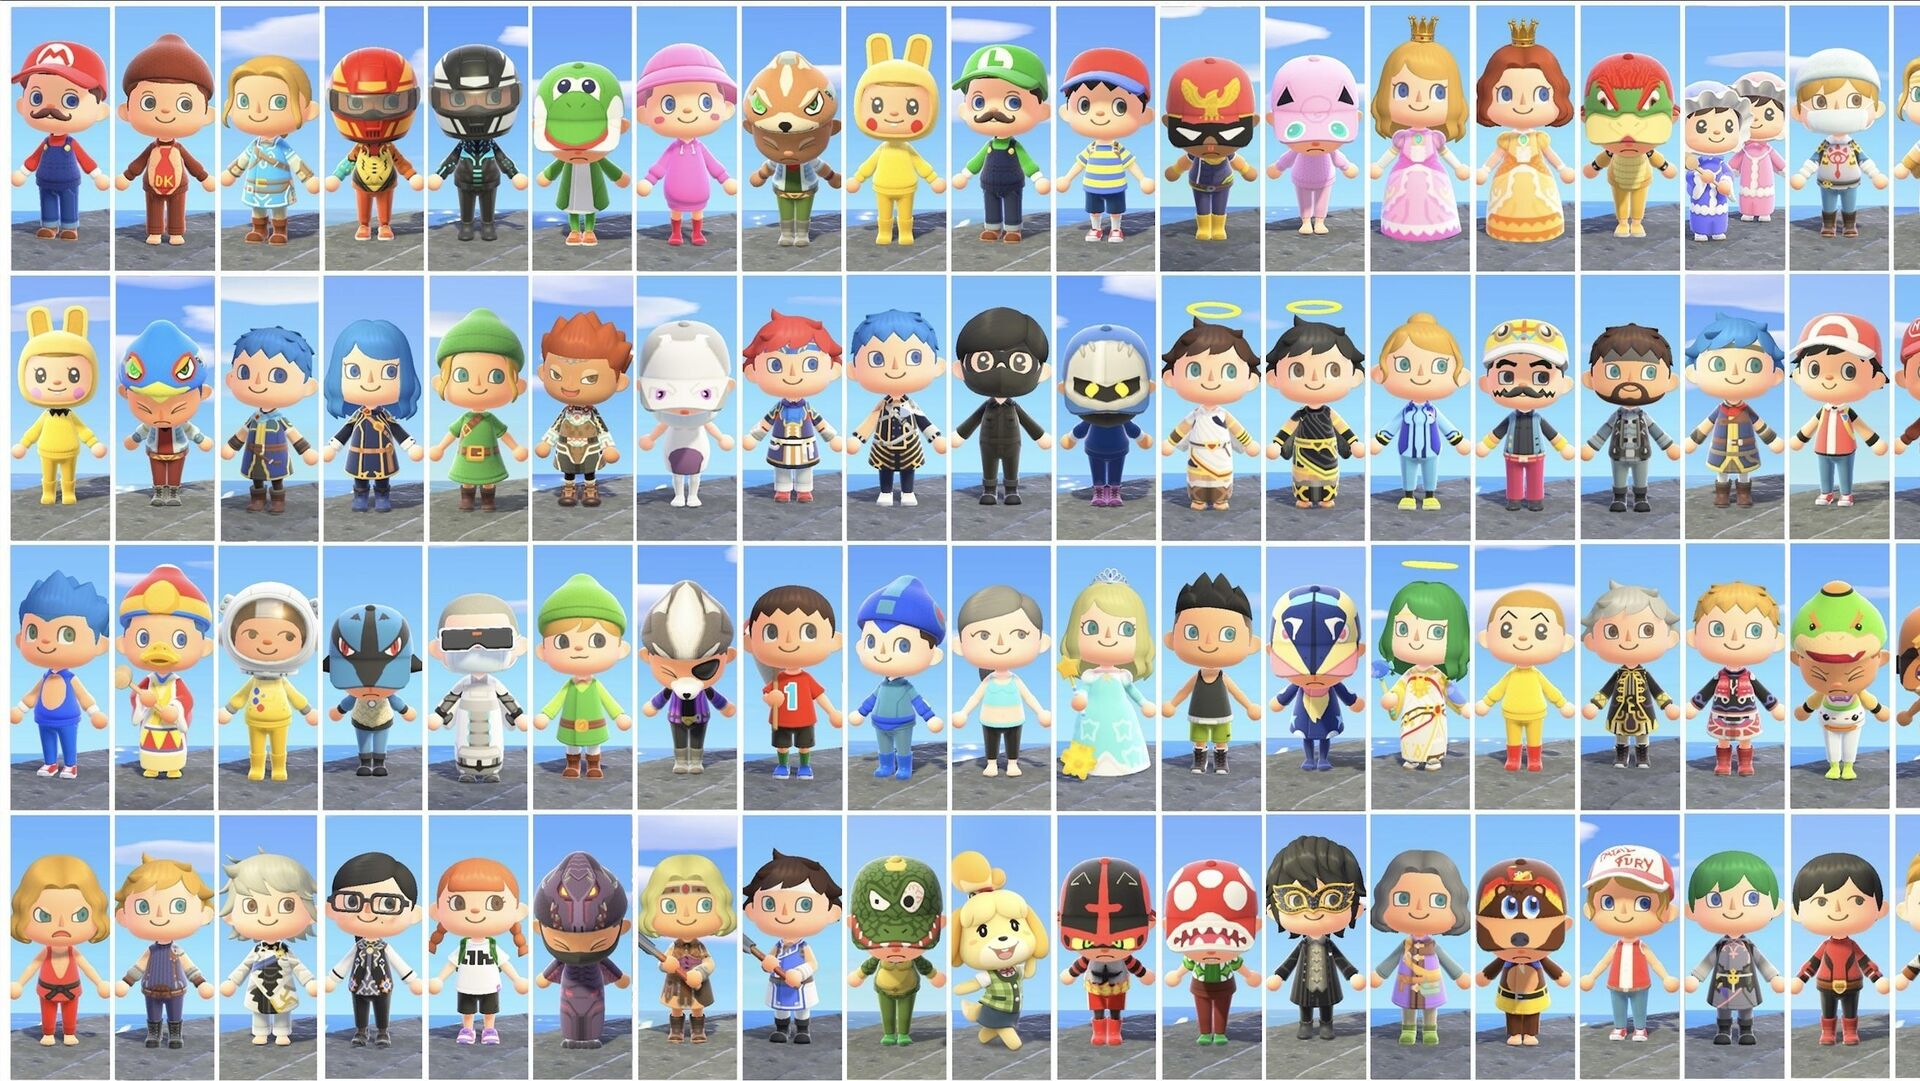 Someone Created The Entire Smash Bros Roster In Animal Crossing New Horizons Eurogamer Net